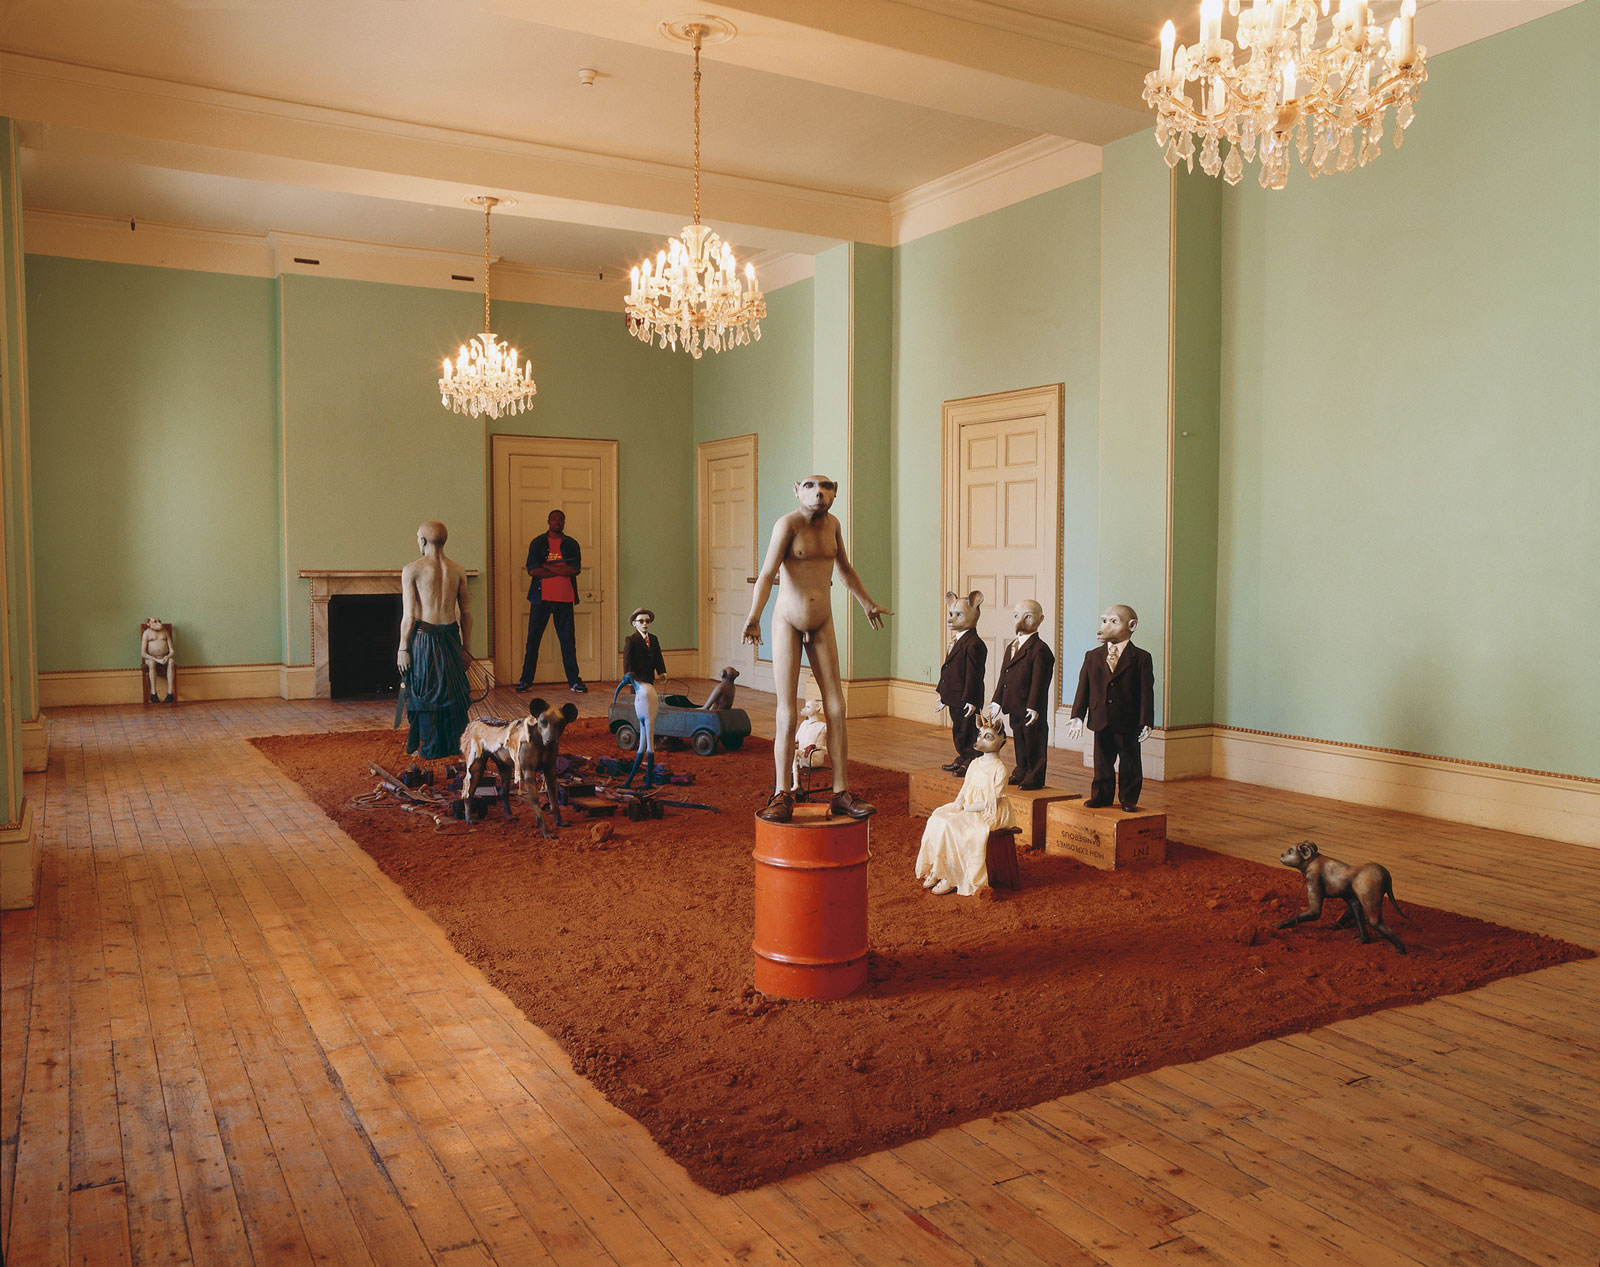 <i>African Adventure</i> (1999–2002). Installation: British Officers' Mess, Castle of Good Hope, Cape Town. Dimensions variable. Sculpted figures (<i>Beast</i>, <i>Custodian</i>, <i>Dog</i>, <i>Doll with industrial-strength gloves</i>, <i>Girl with gold and diamonds</i>, <i>Harbinger</i>, <i>Ibis</i>, <i>Hangman</i>, <i>Radiance of Faith</i>, <i>Settler</i>, <i>Young man</i>); reinforced plaster; oil paint; fiberglass; acrylic paint; synthetic clay; ammunition boxes; found clothing; Venetian gloves; gold; diamonds; jackal skin; machetes; sickles; toy tractors; child's car; child's push chair; oil drum; wood; steel; Bushmanland earth. Photograph by Mark Lewis